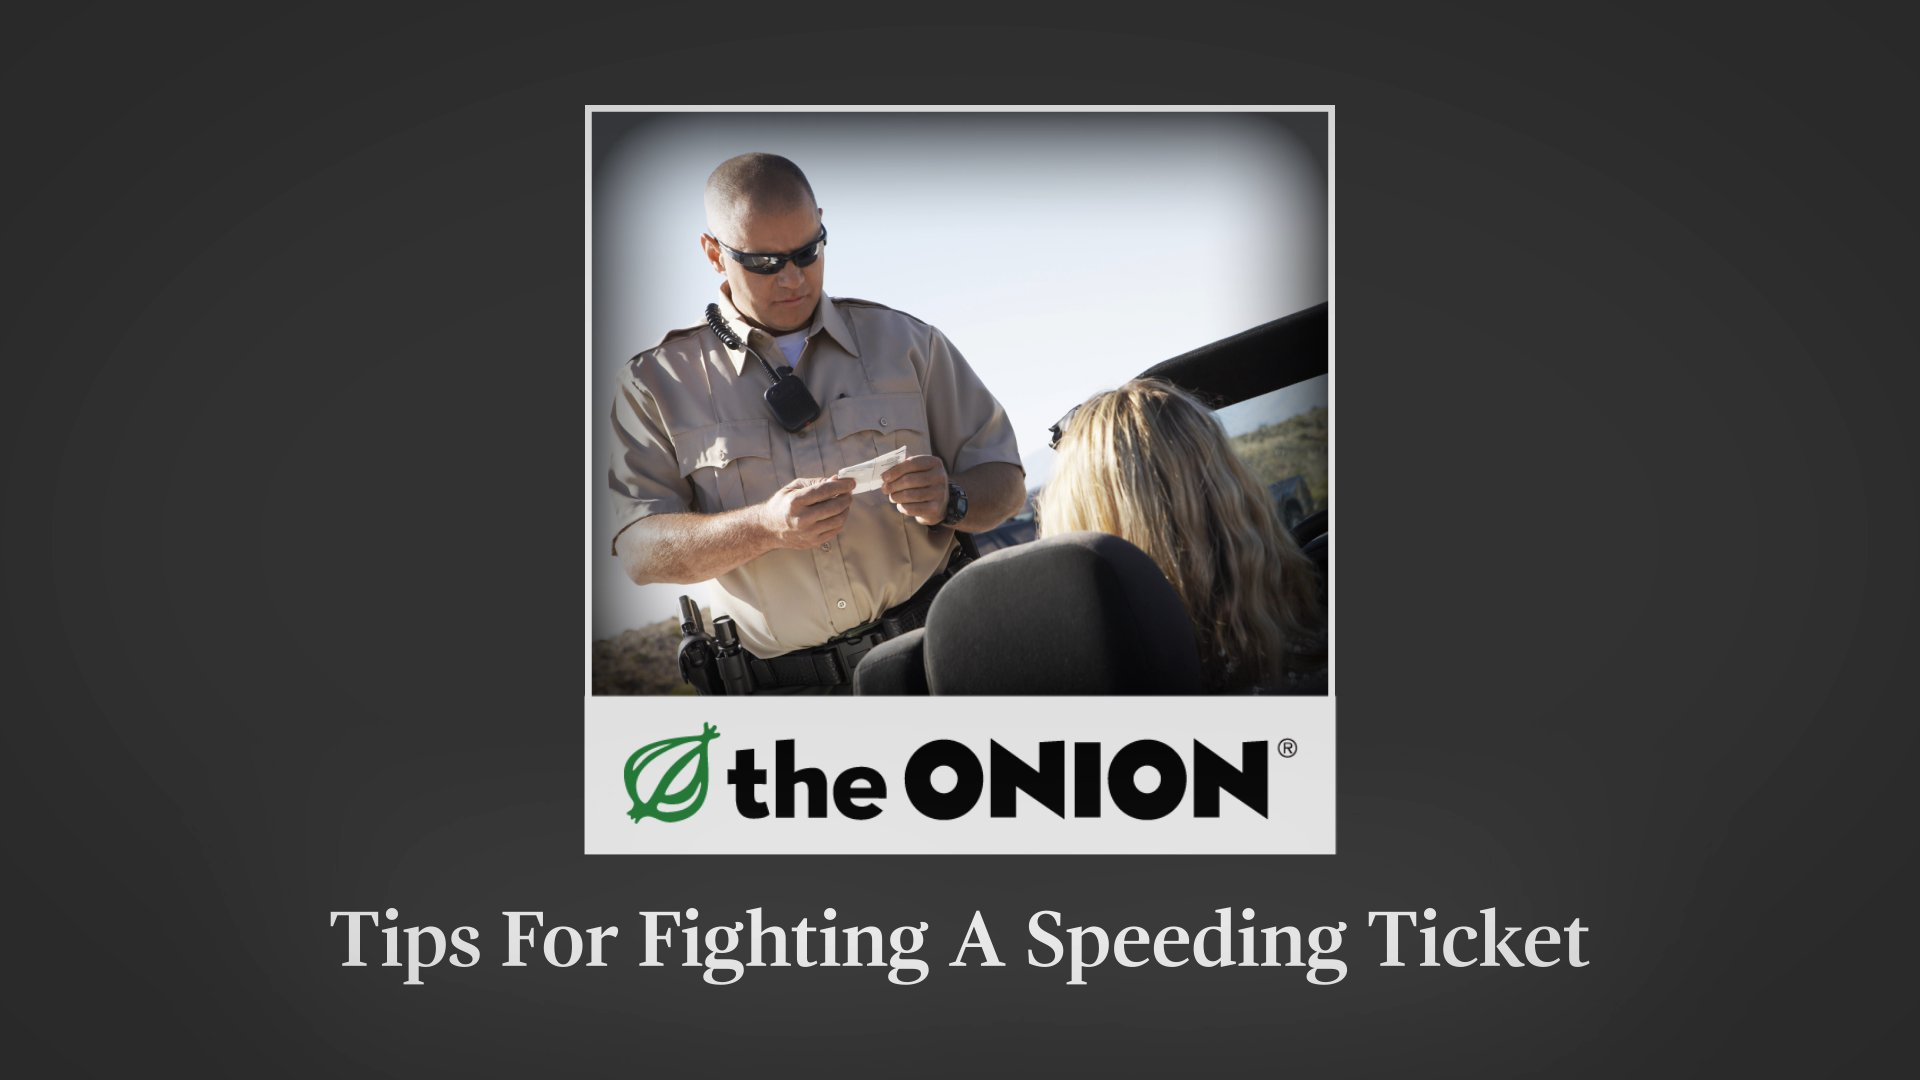 Tips For Fighting A Speeding Ticket https://t.co/jkChCySACS